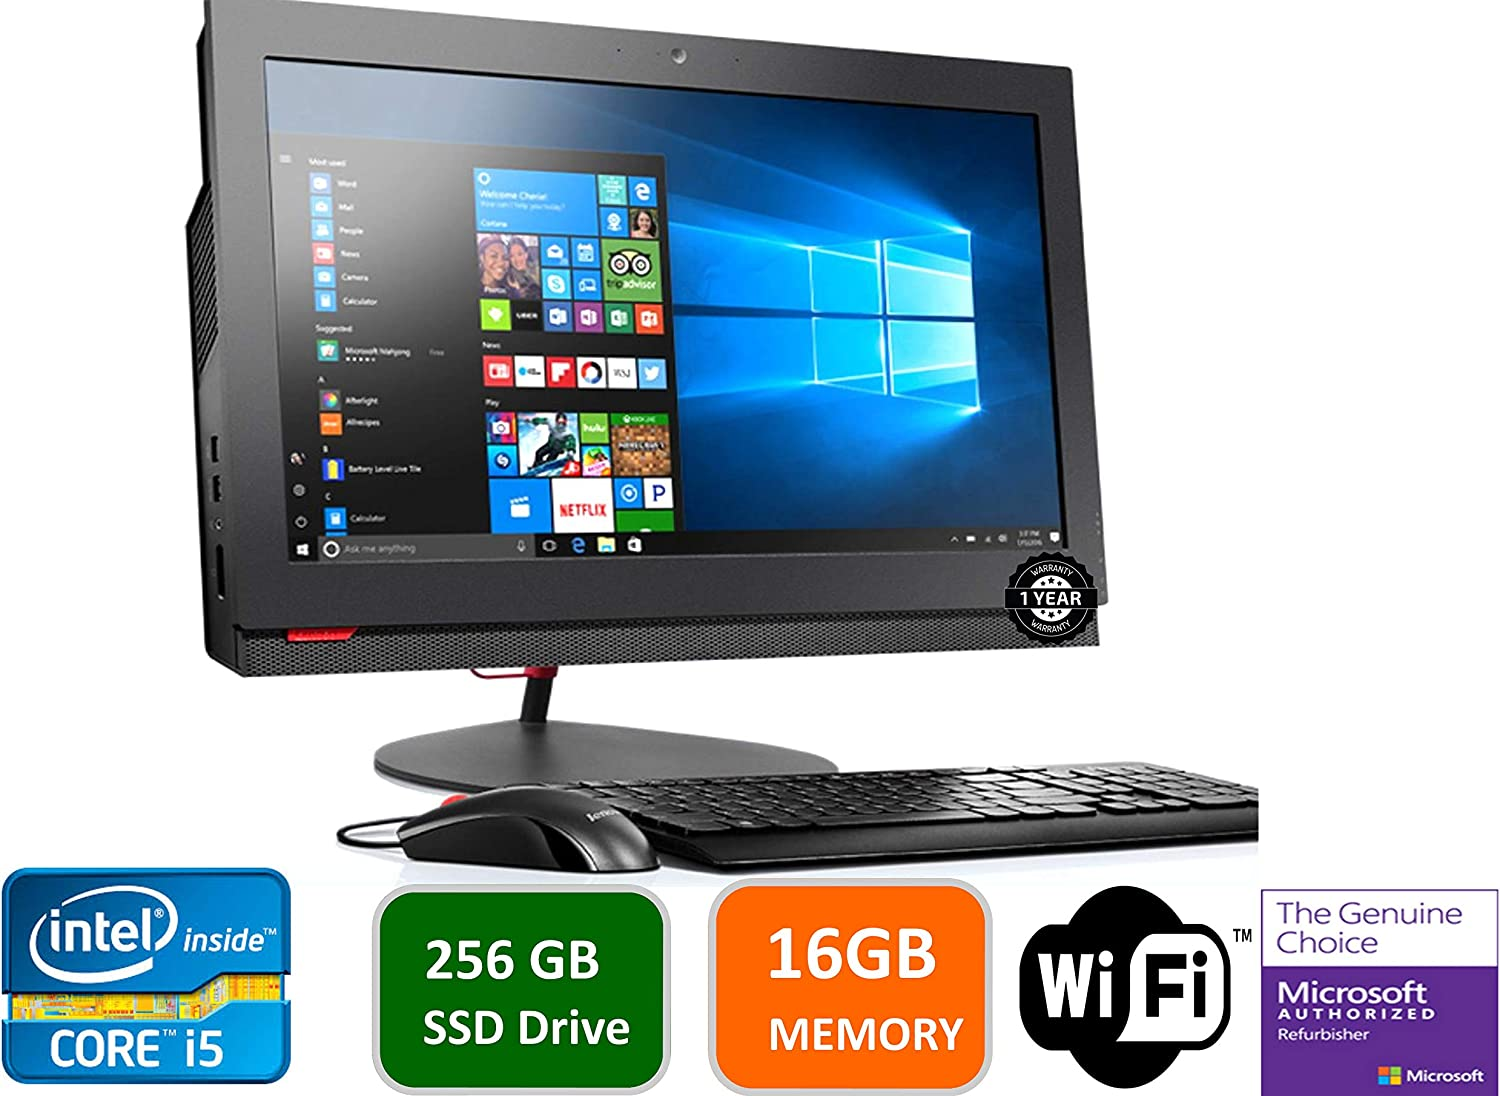 Lenovo ThinkCentre M800Z 21.5 in HD+ All-in-One Desktop Computer, Intel Quad Core i5-6500-3.2 GHz, 16GB RAM, 256GB SSD HDD, USB 3.0, DVDRW, DiaplayPort, RJ-45, Windows 10 Professional (Renewed)